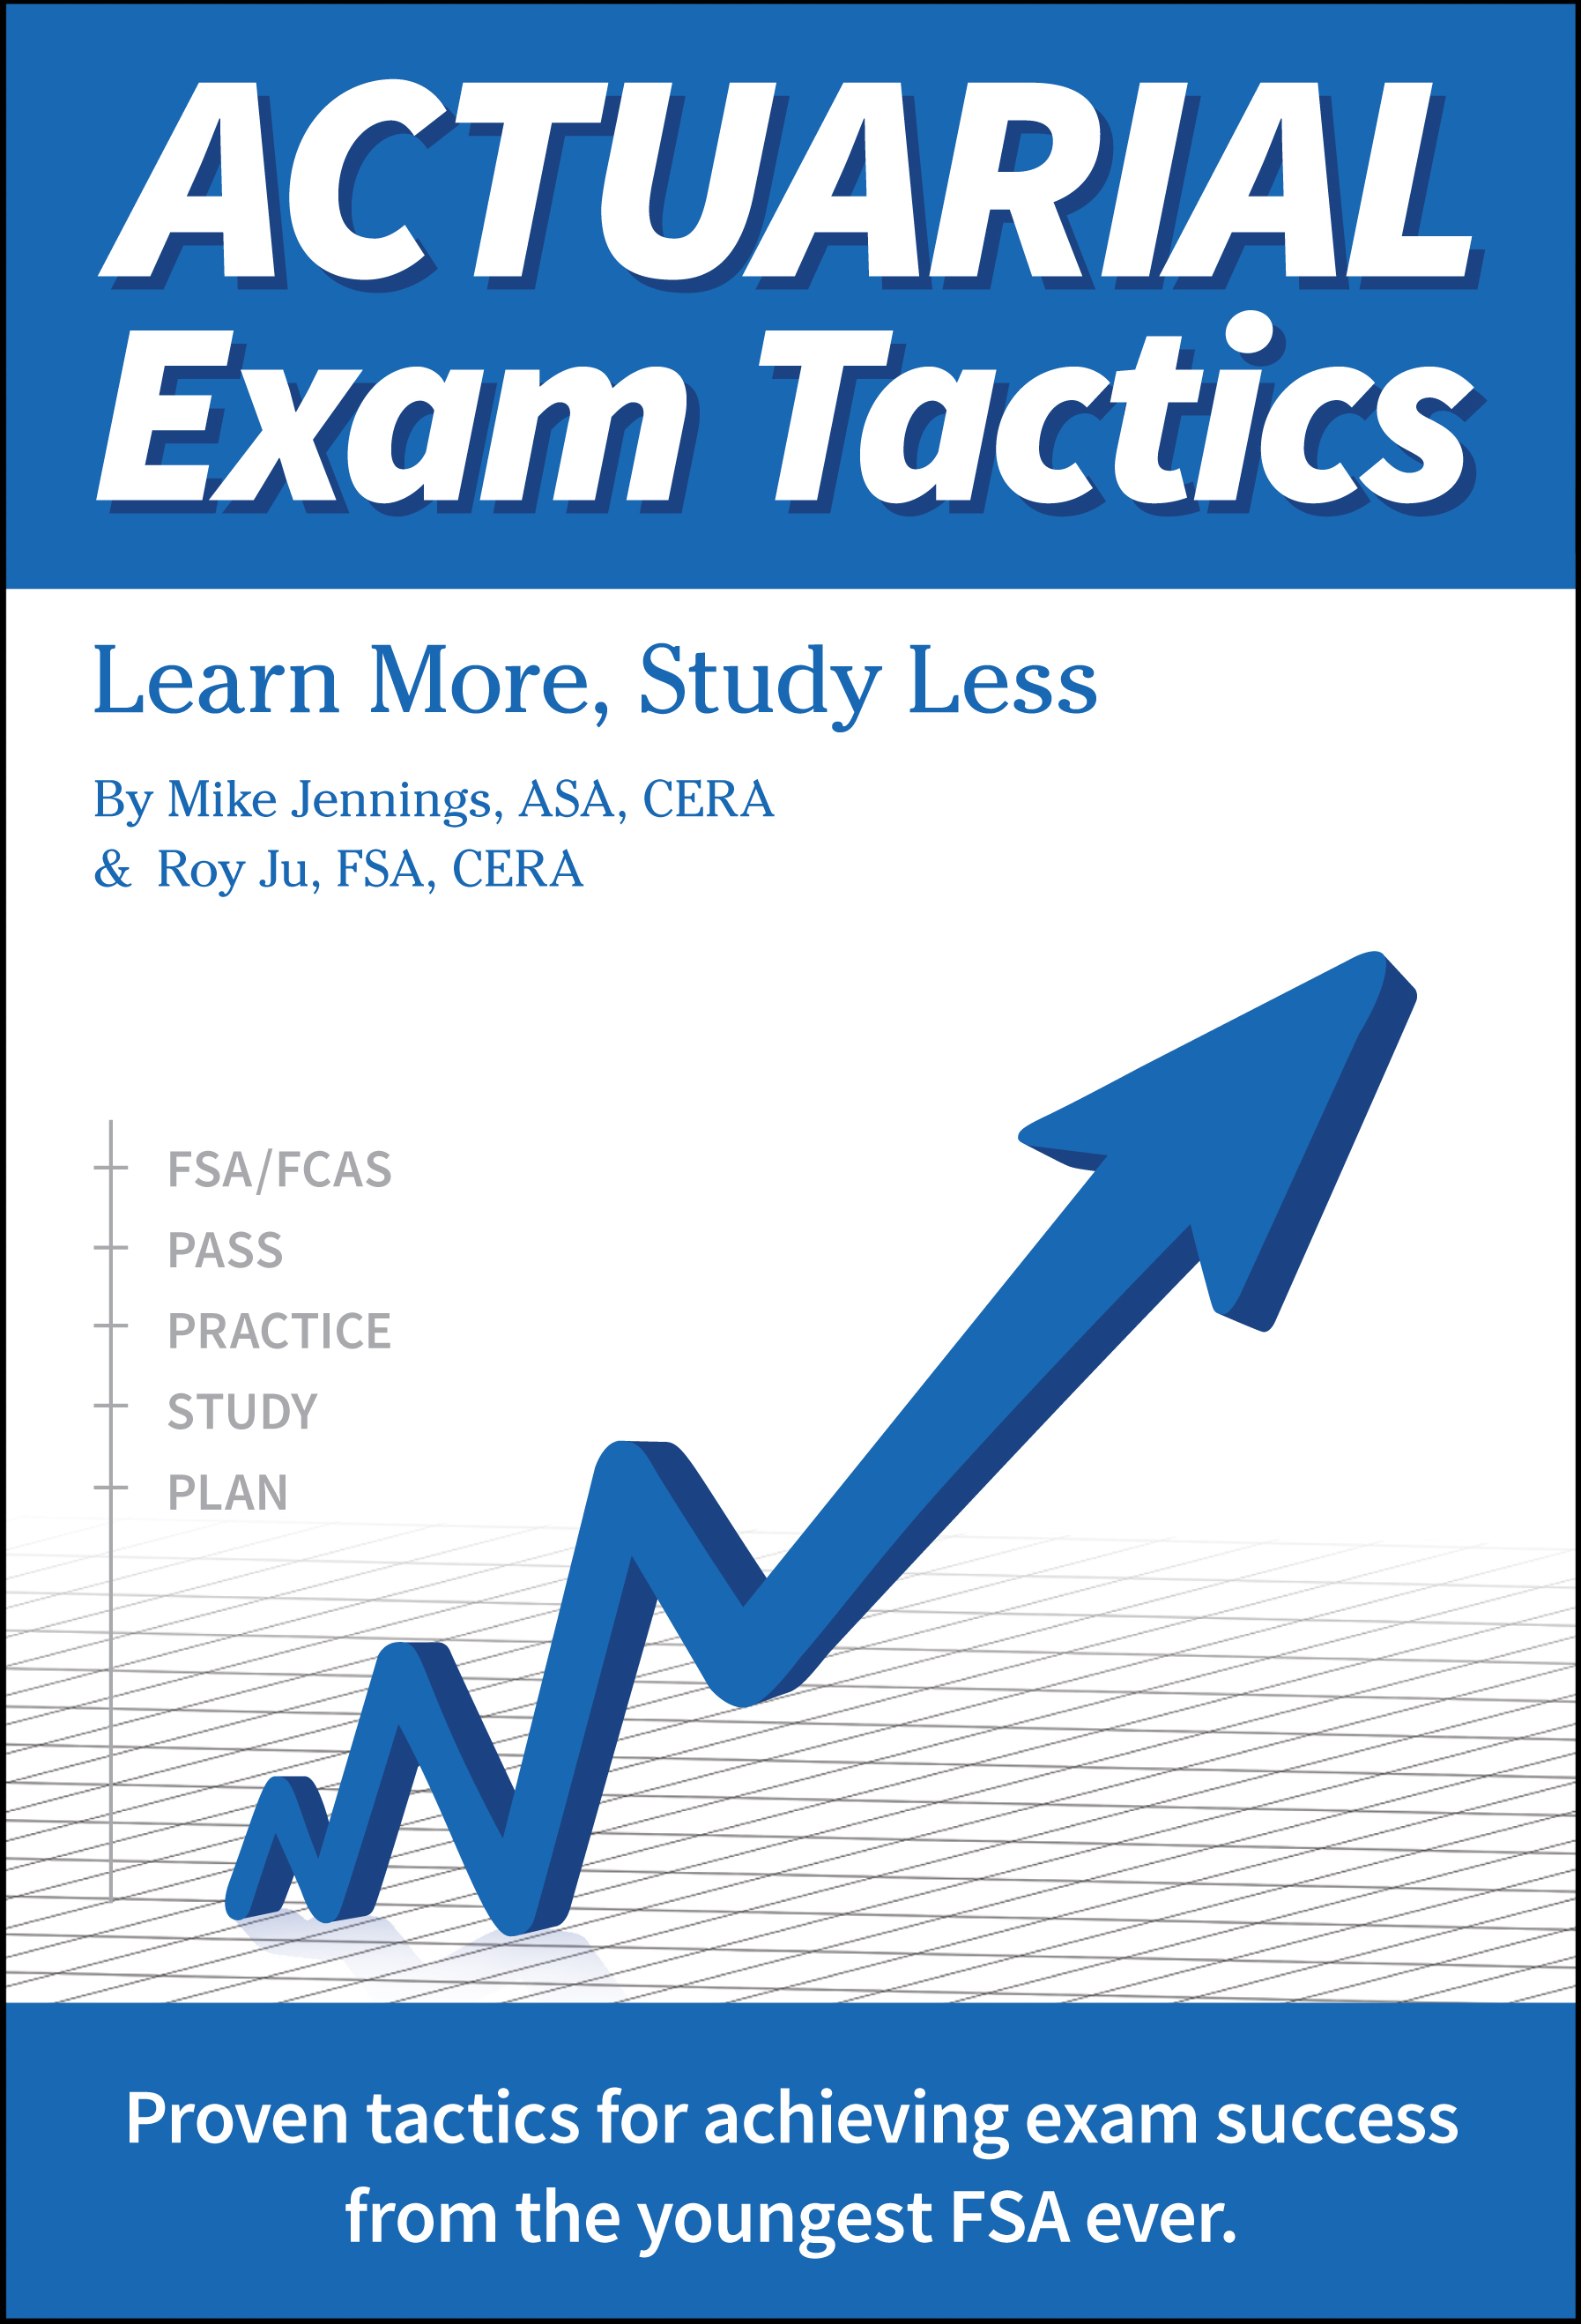 The Best Exam FM Study Guide (2019) | Etched Actuarial